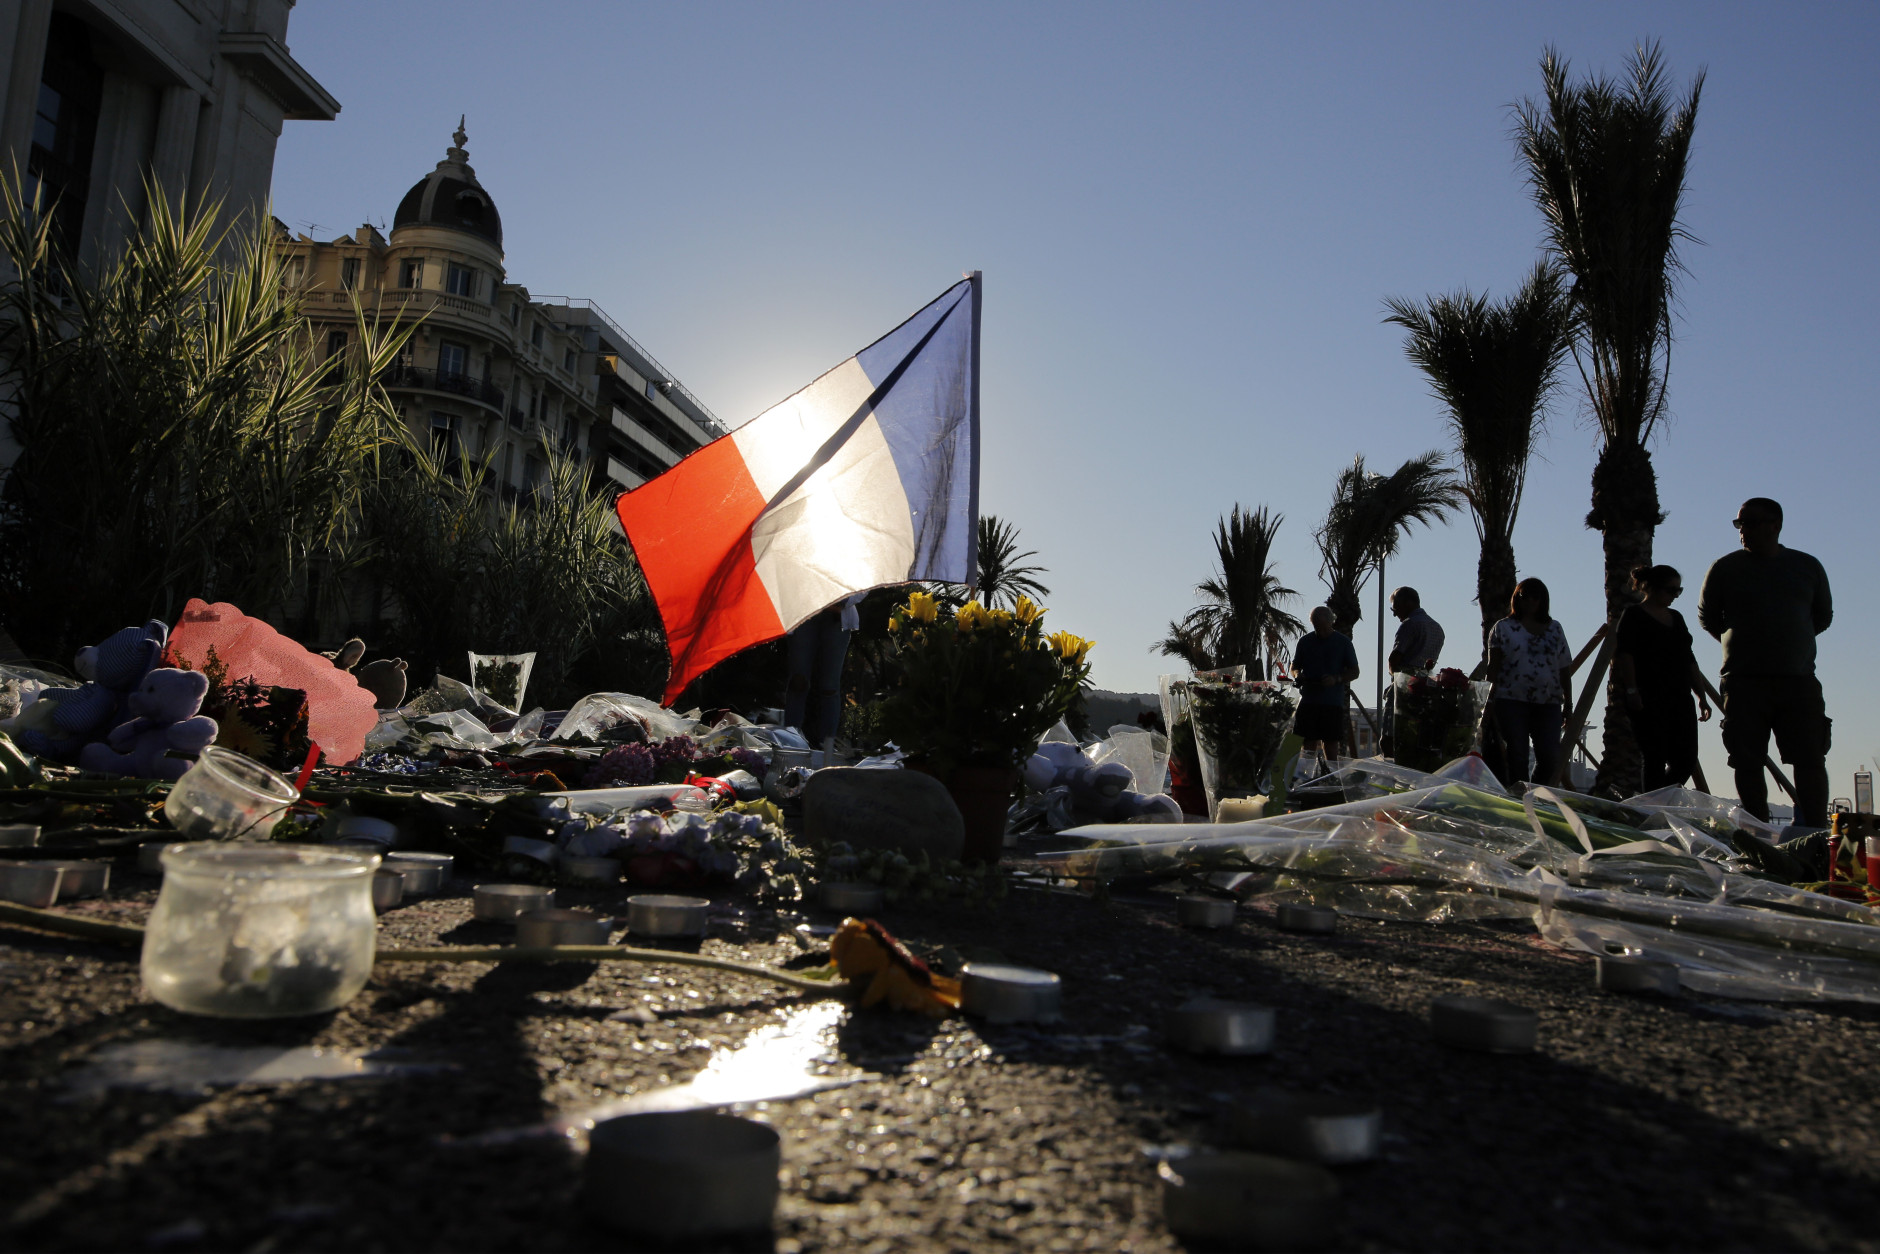 FILE - In this Sunday, July 17, 2016 file photo, a French flag stands stall amongst a floral tribute for the victims killed during a deadly attack, on the famed Boulevard des Anglais in Nice, southern France. The relentless series of mass killings across the globe poses a challenge for experts trying to analyze them without lapsing into faulty generalizations. Terms like contagion and copycat killing apply in some cases, not in others, they say, and in certain instances perpetrators' terrorist ideology intersects with psychological instability. (AP Photo/Laurent Cipriani, File)